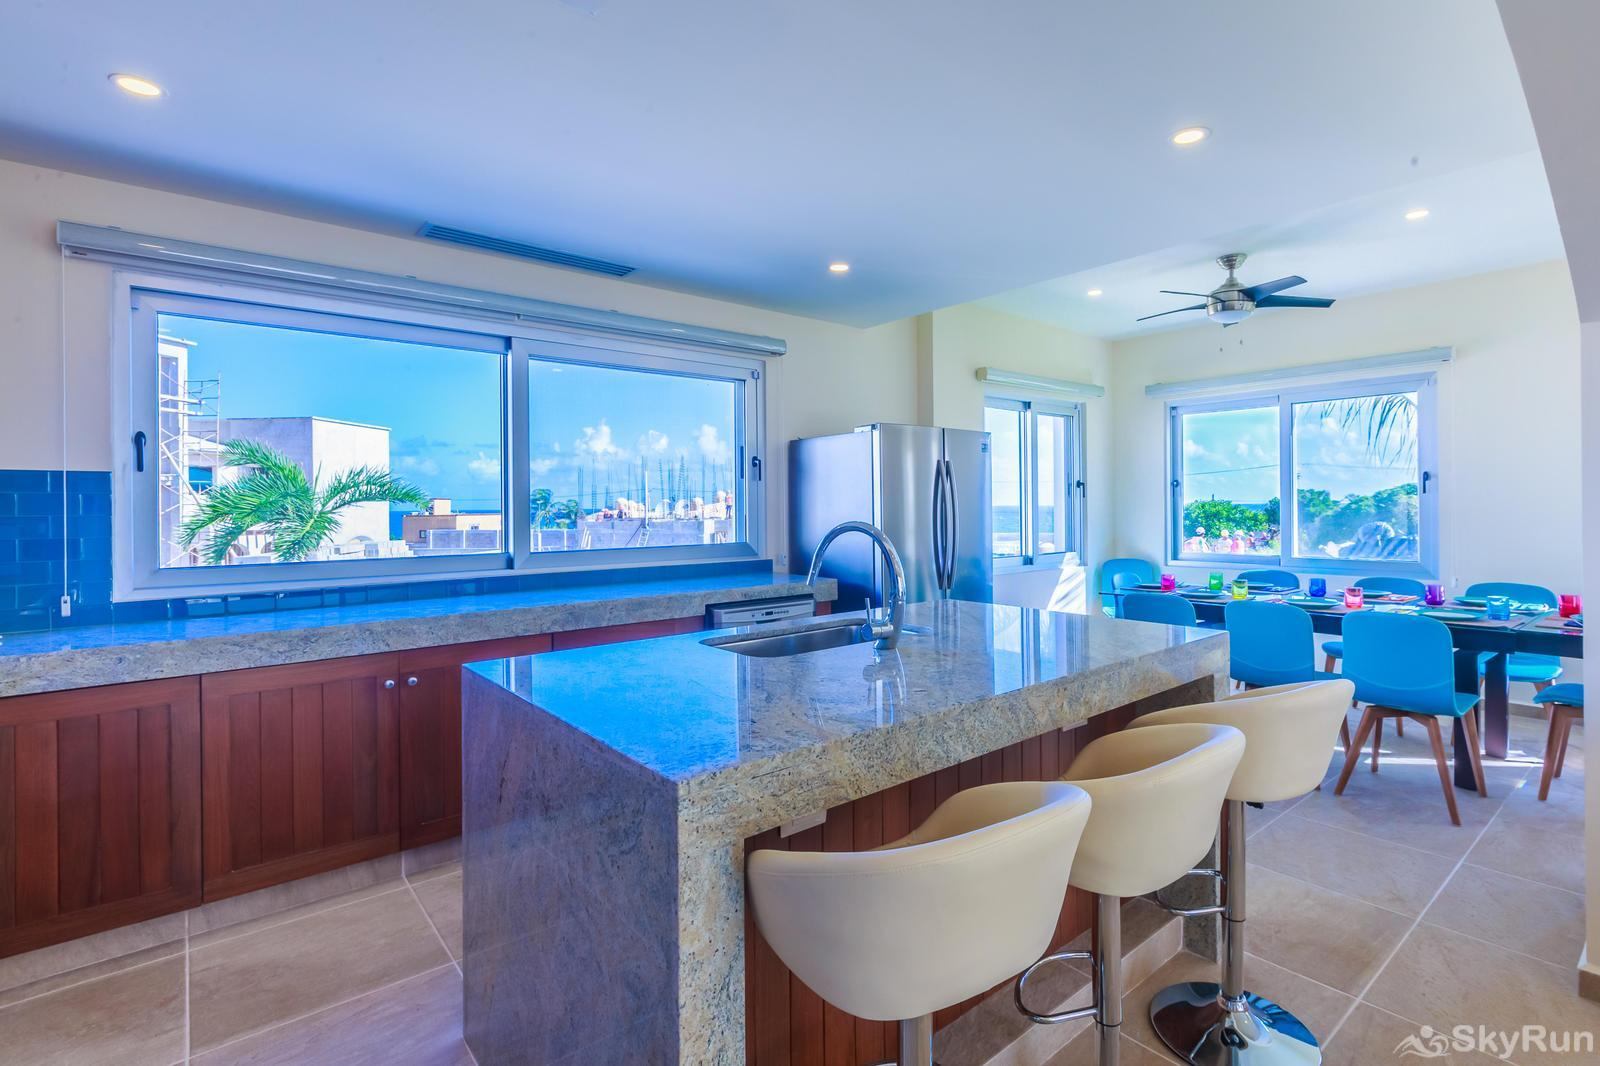 NEW and Unique Residencial Home Prime Location Isla Mujeres Fully Equipped Kitchen